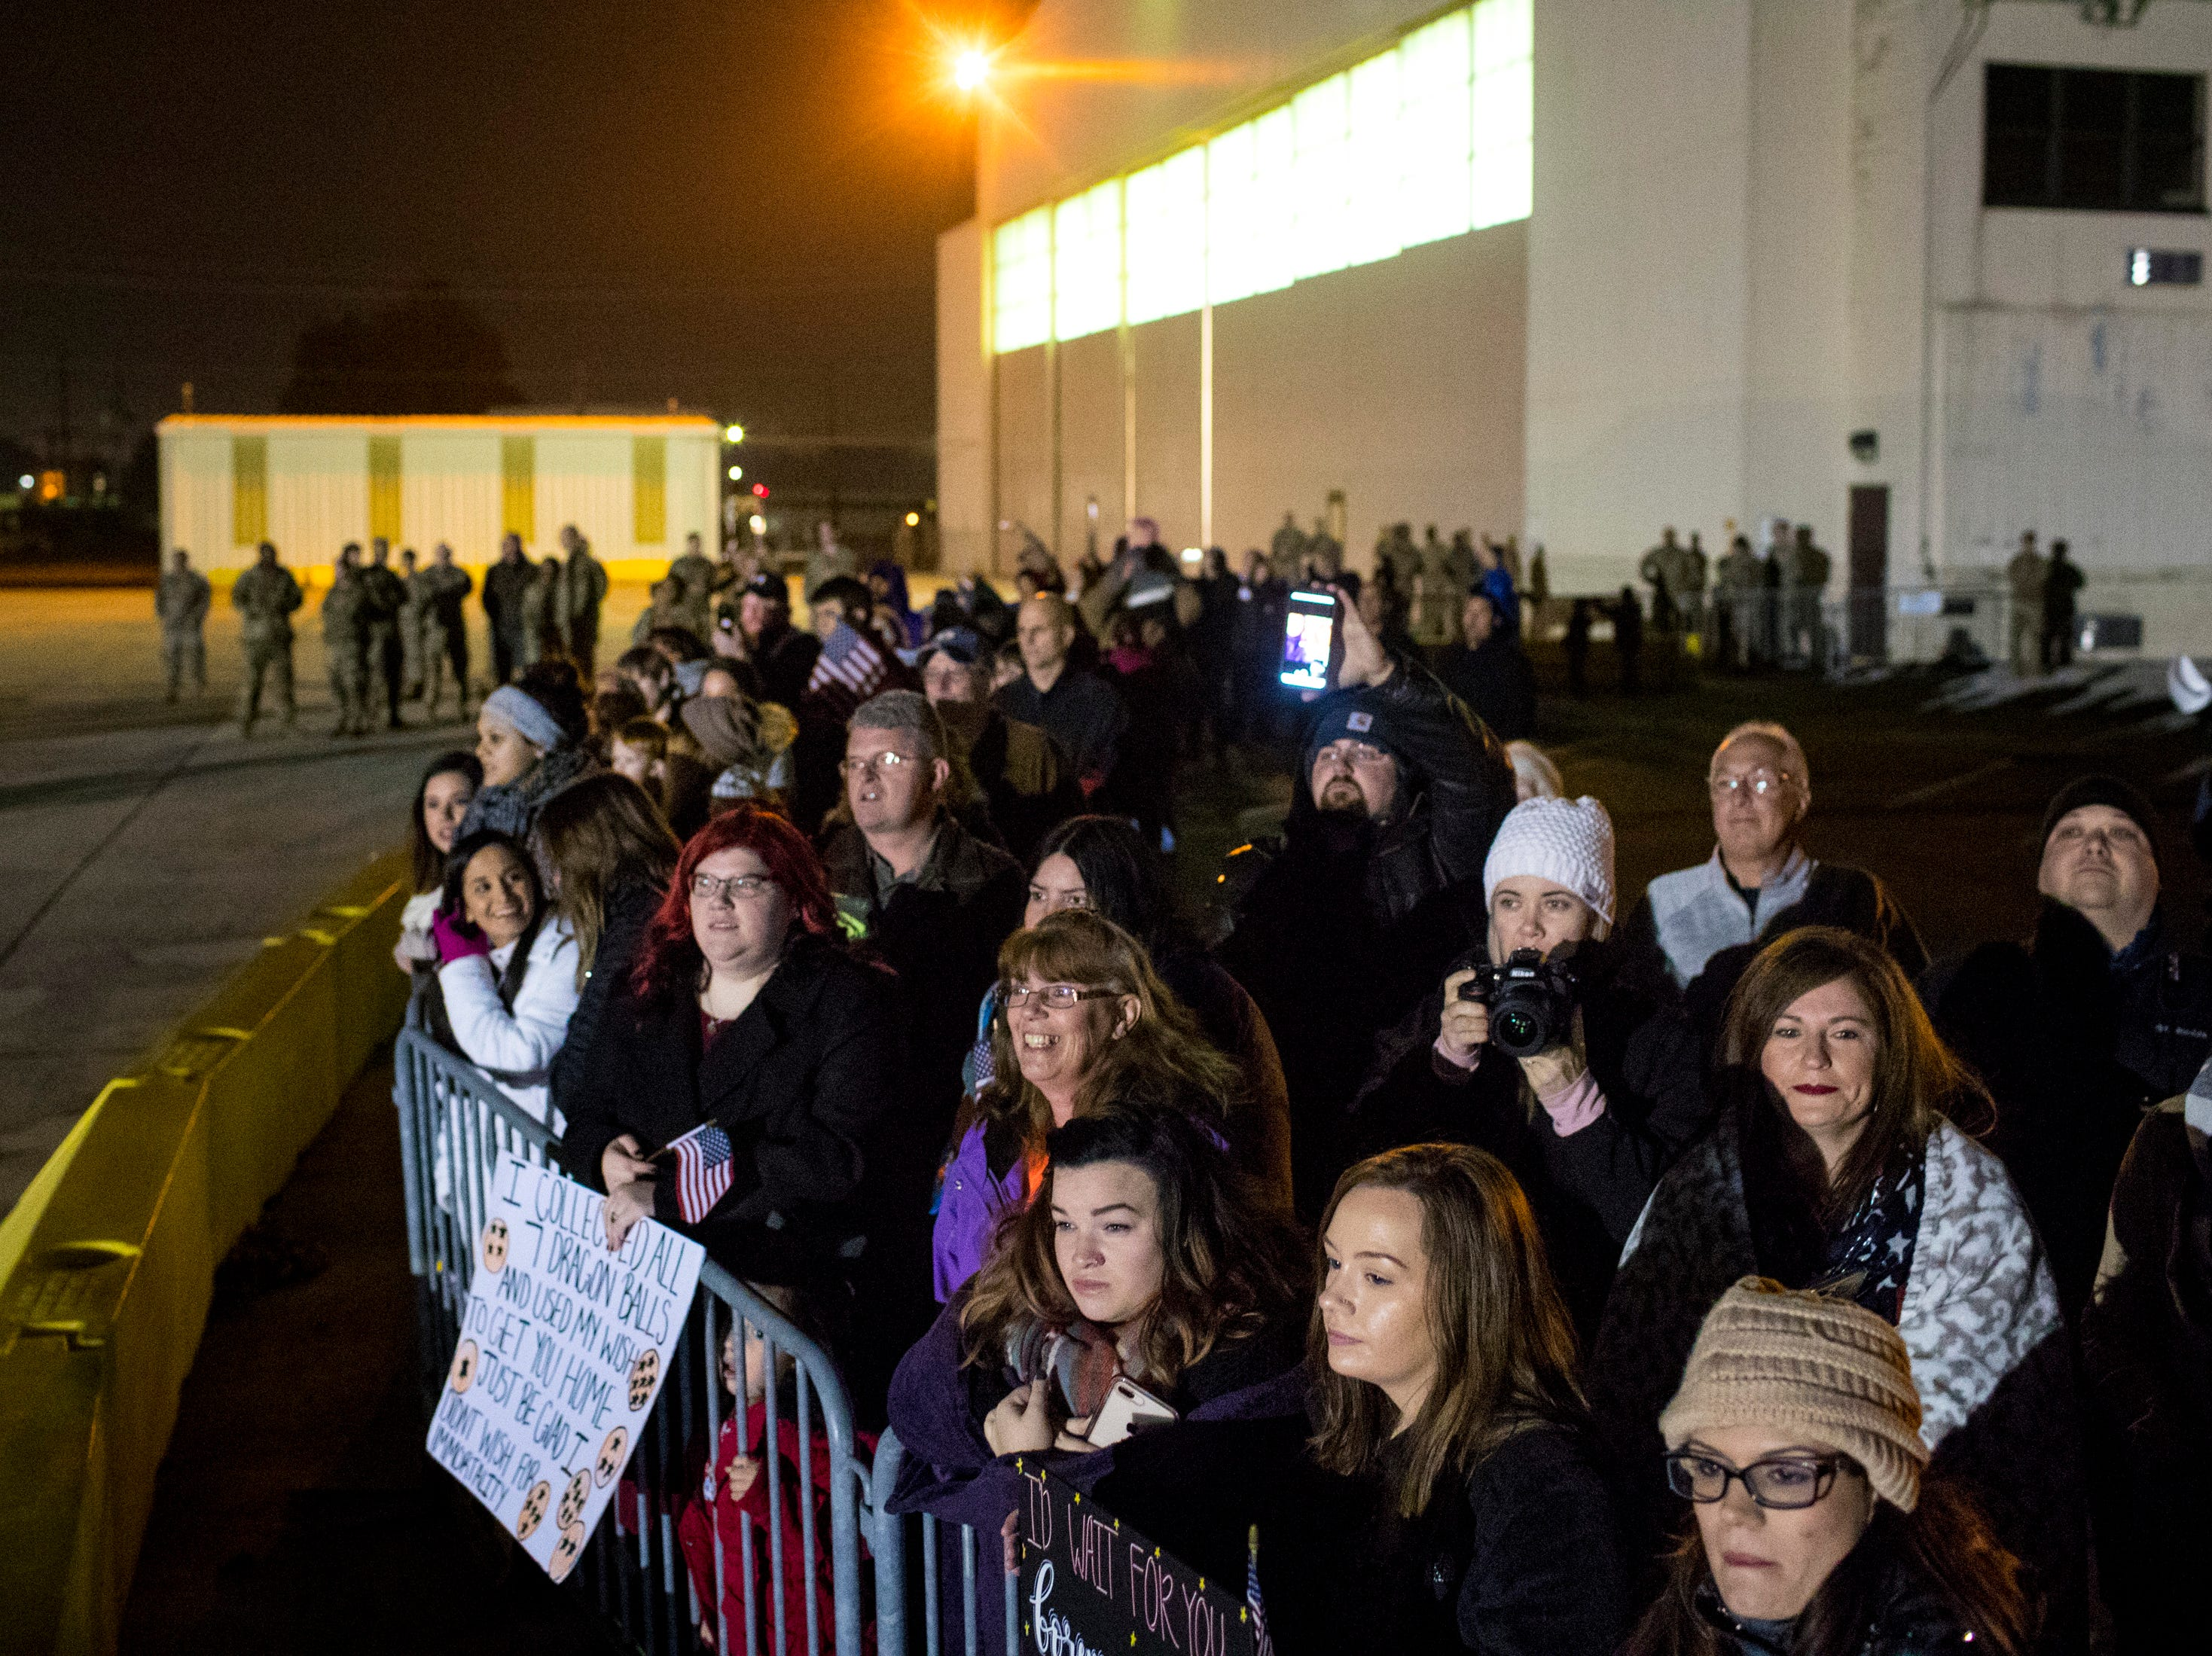 Friends and family members wait to greet their loved ones during the welcome home ceremony for the 2nd Battalion, 44th Air Defense Artillery Regiment and 101st Airborne Division at Fort Campbell in the early hours of Monday, Nov. 19, 2018. The soldiers were returning from a 9-month deployment in Afghanistan.